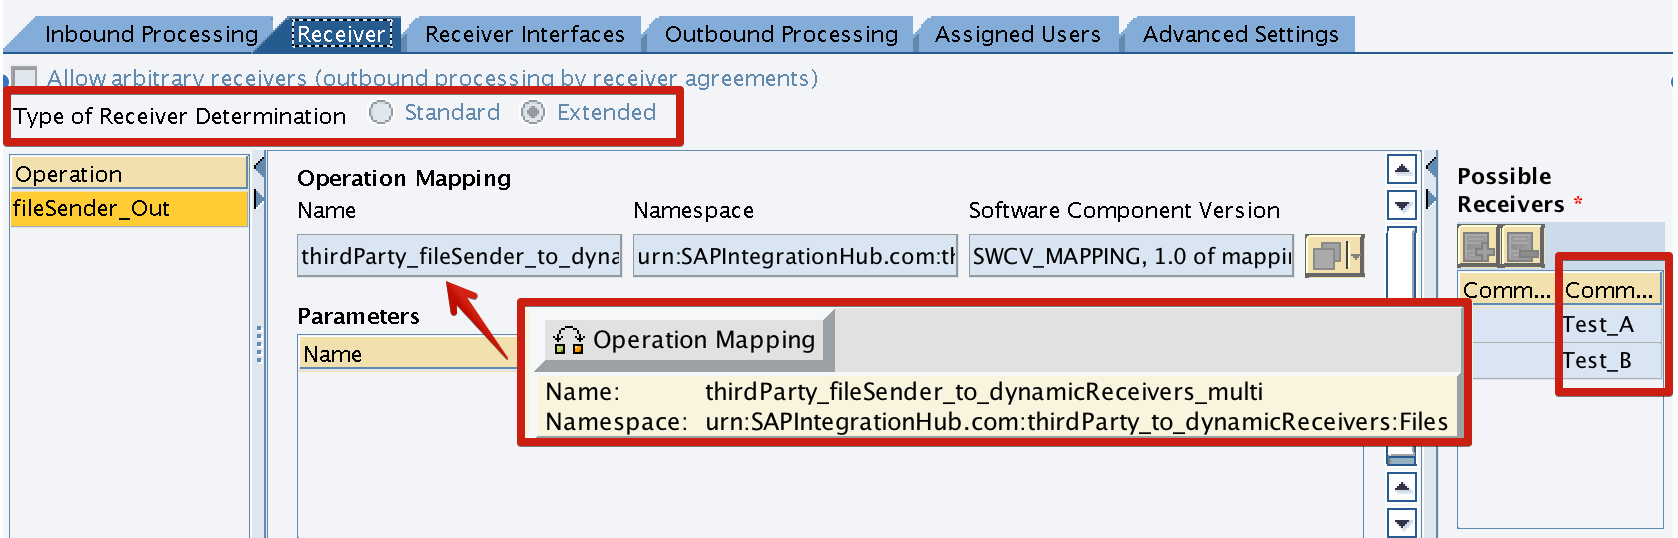 Integration Configuration Object Type of Receiver Determination - Extended